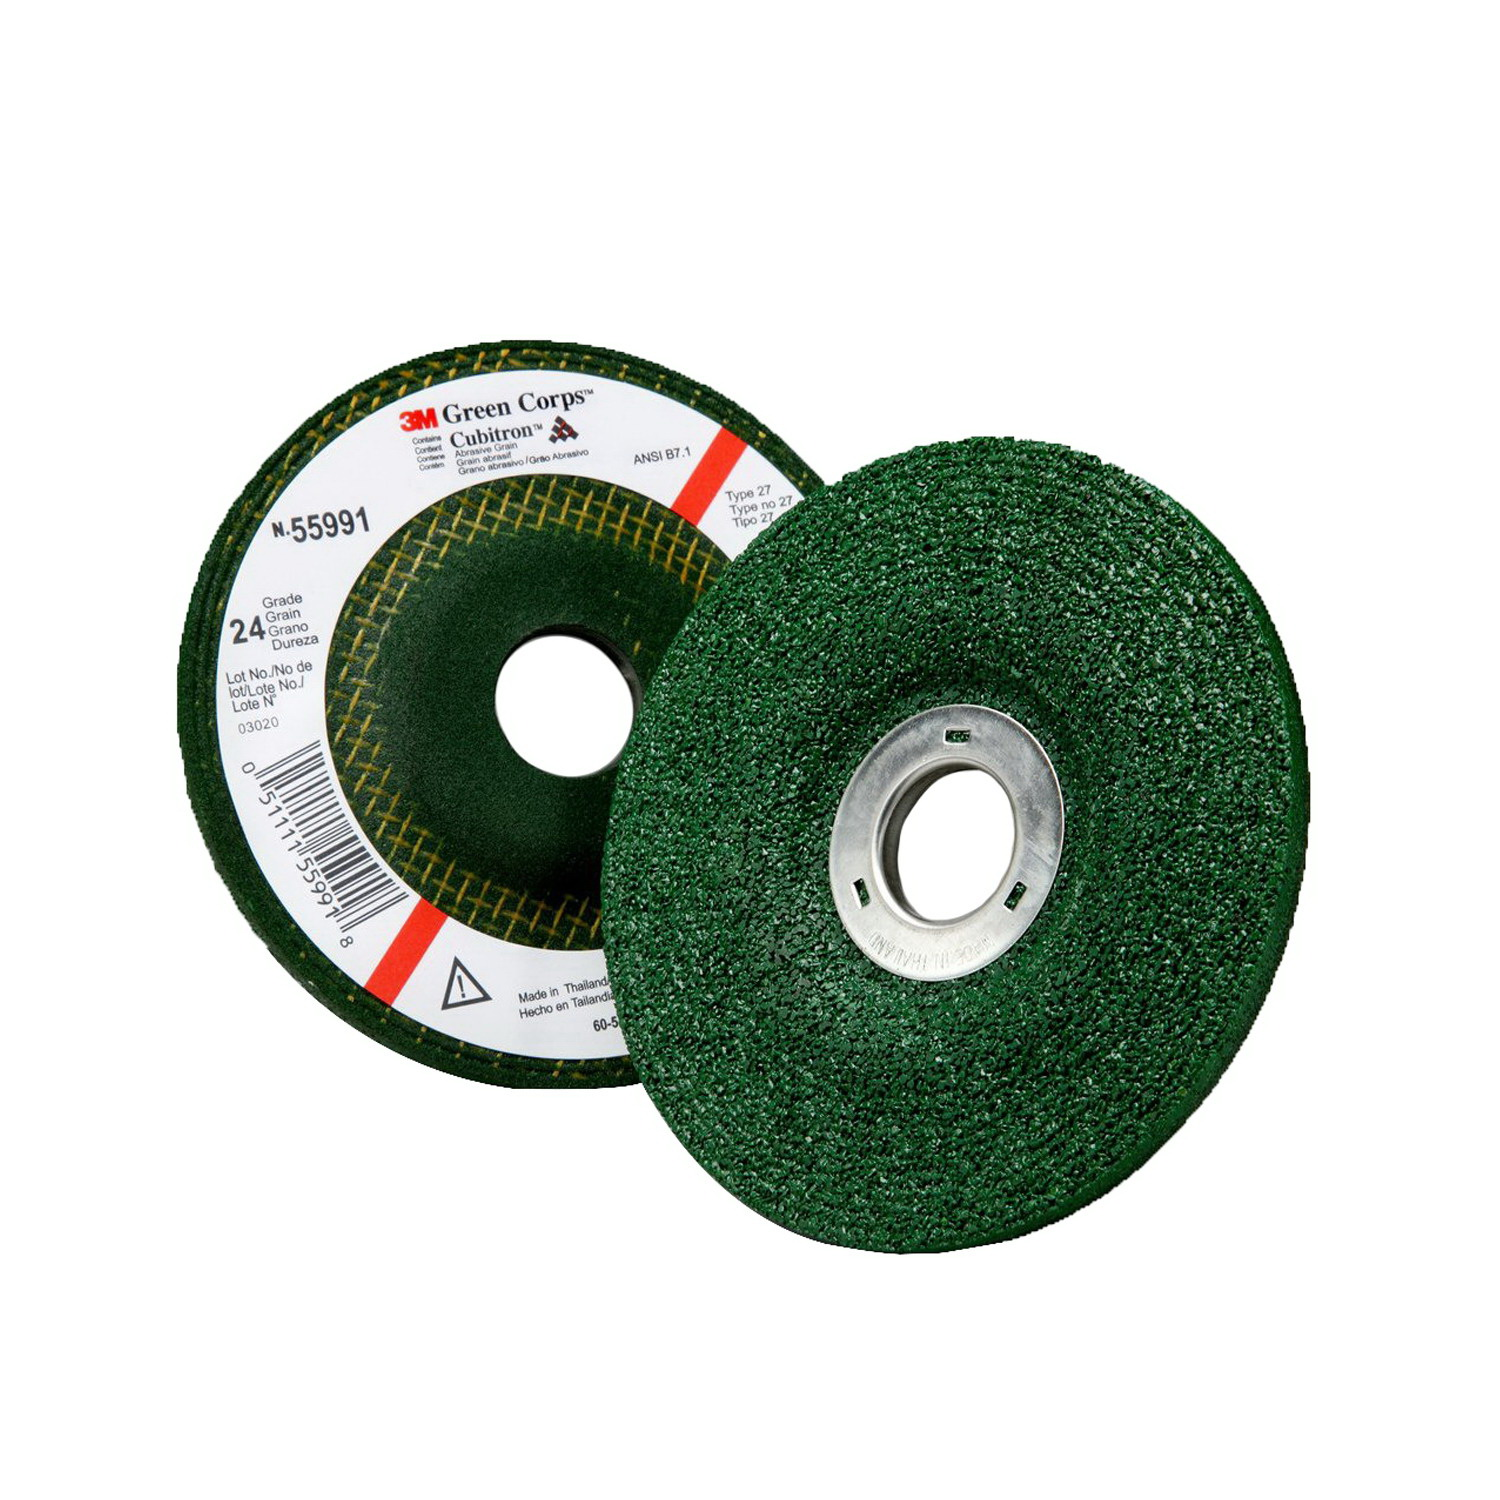 Grade 24 3M Green Corps Grinding Disc 5 in x 7//8 in